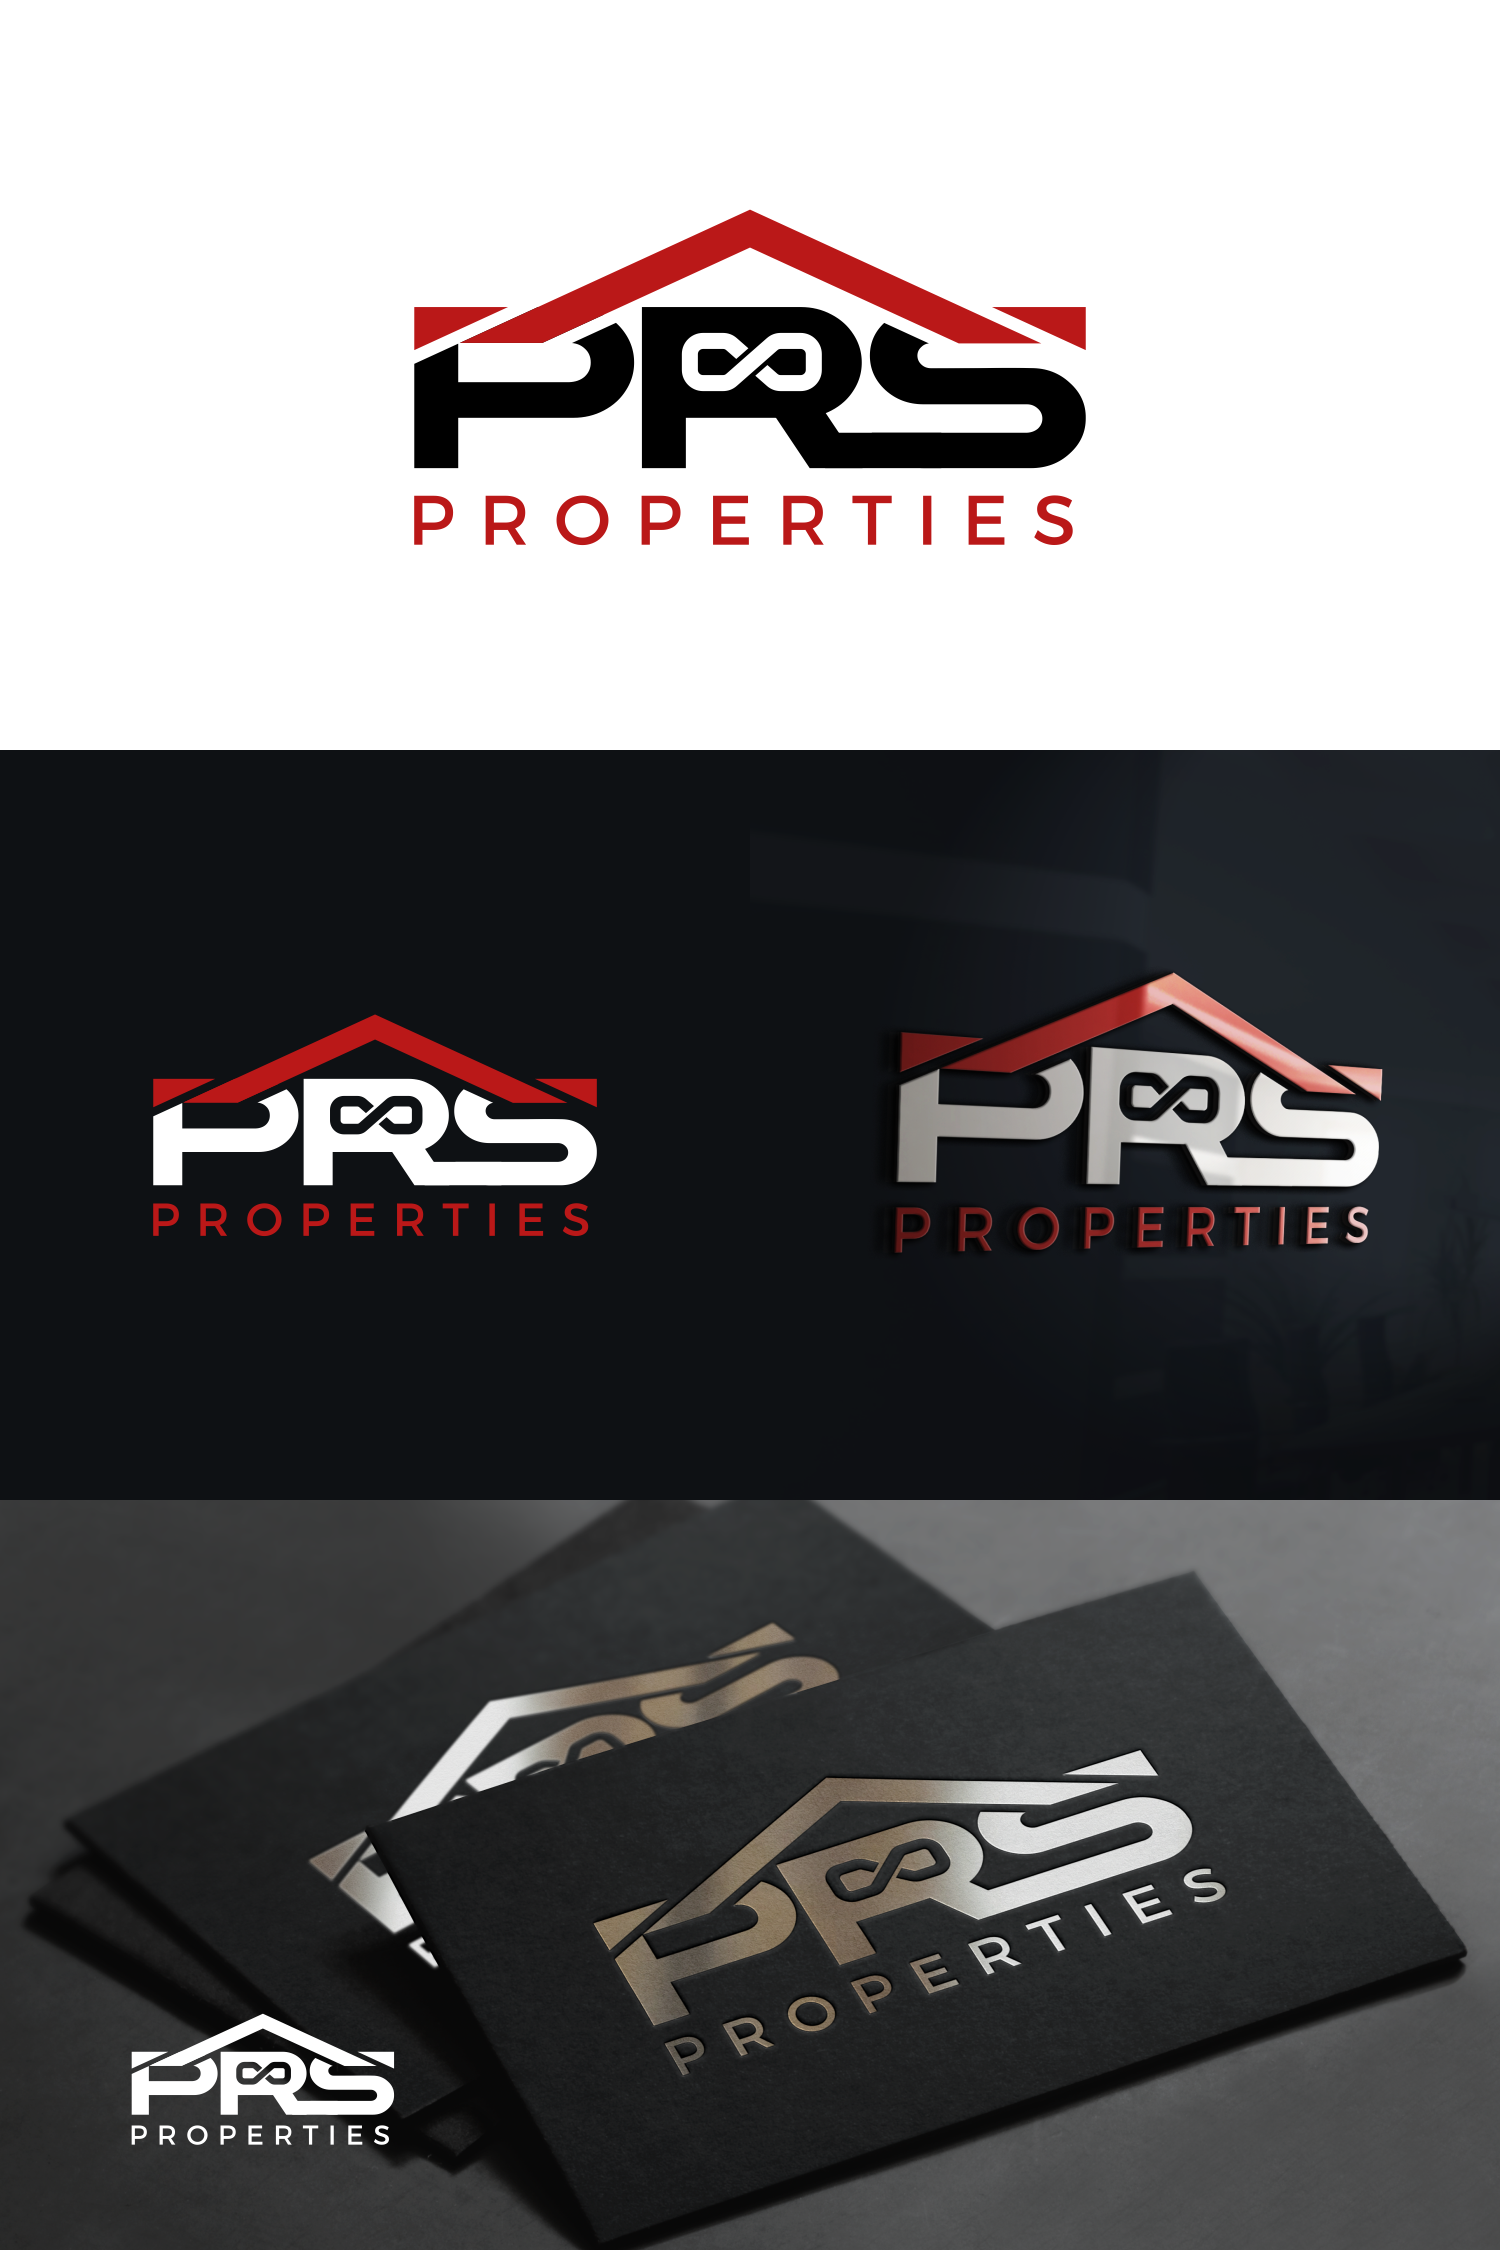 Modern & Simplistic Logo for a Real Estate side business looking to achieve Infinite Returns